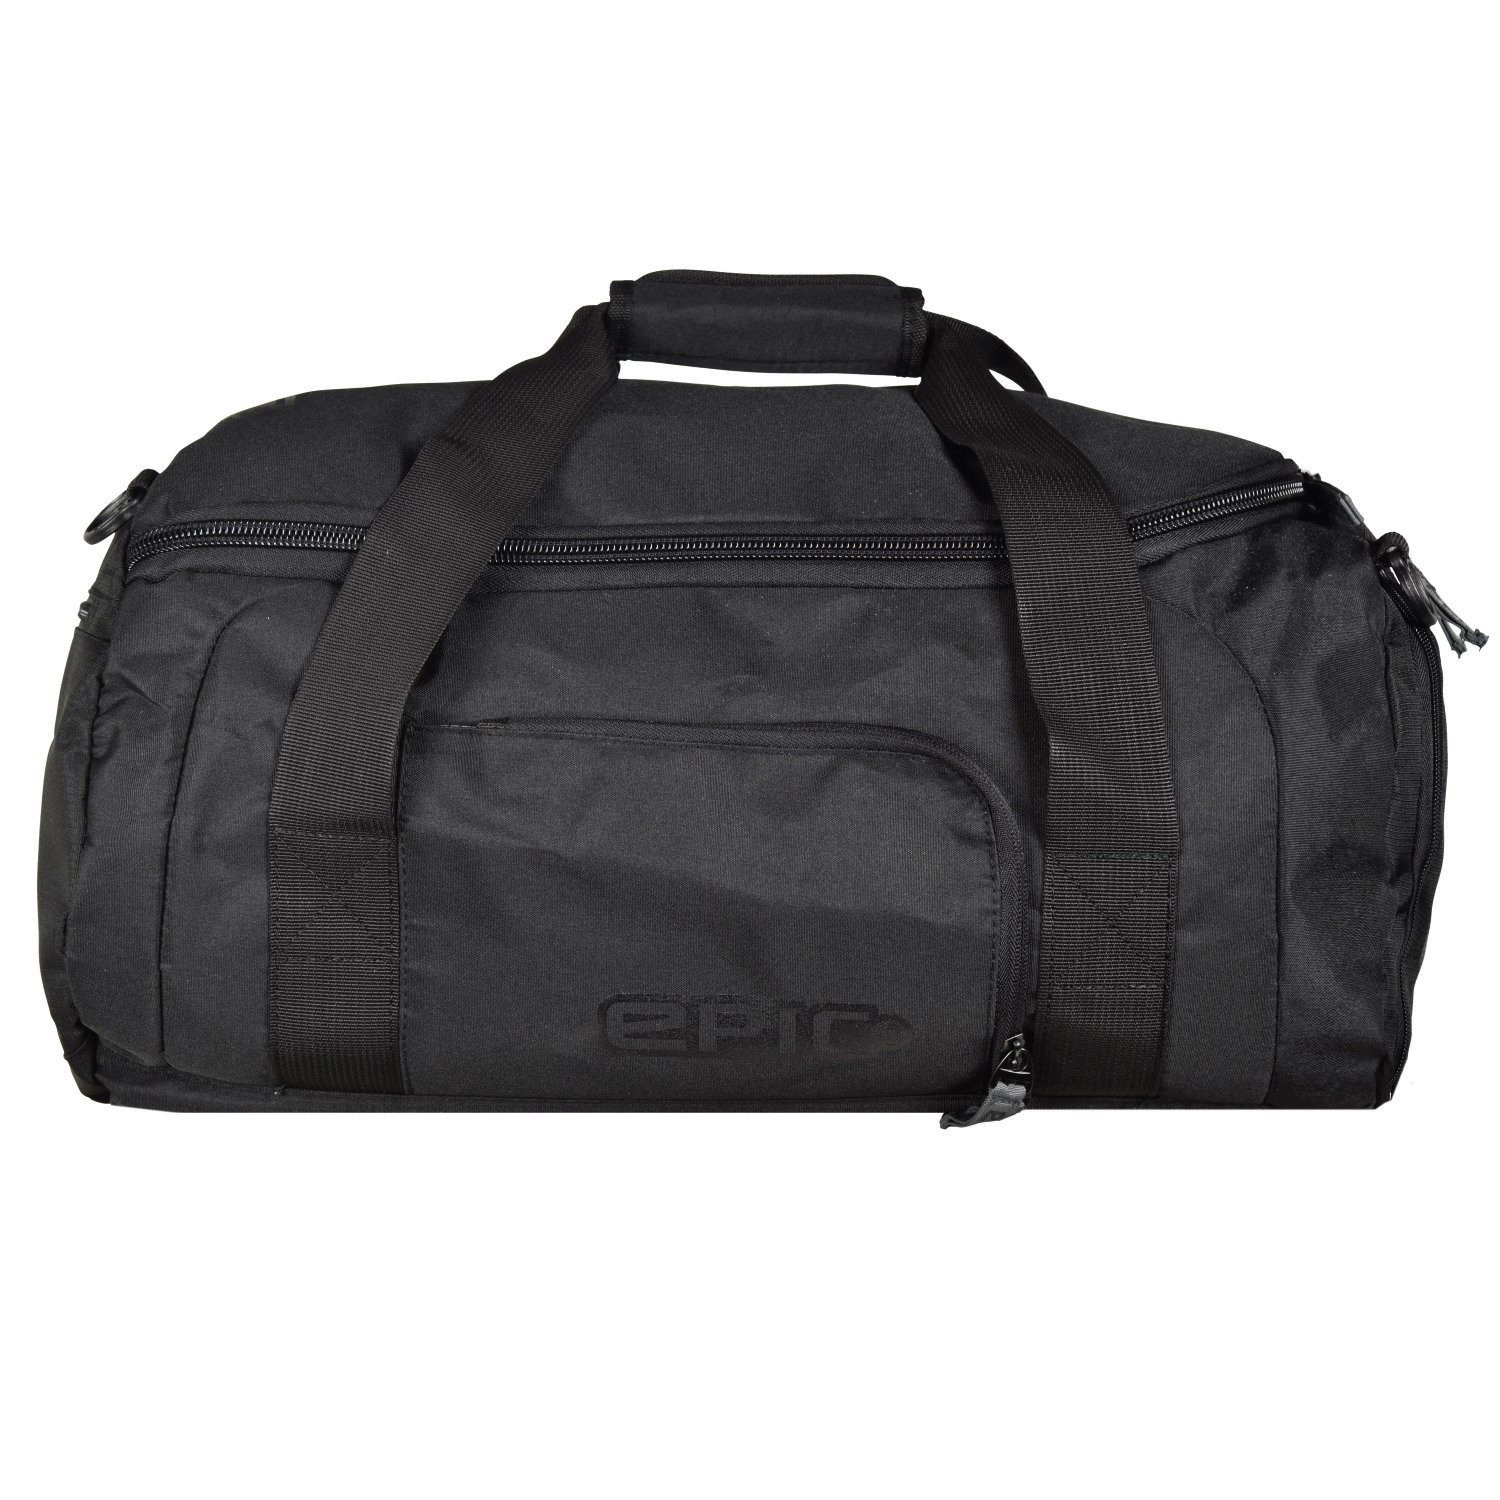 EPIC Explorer lockerBAG Reisetasche 50 cm